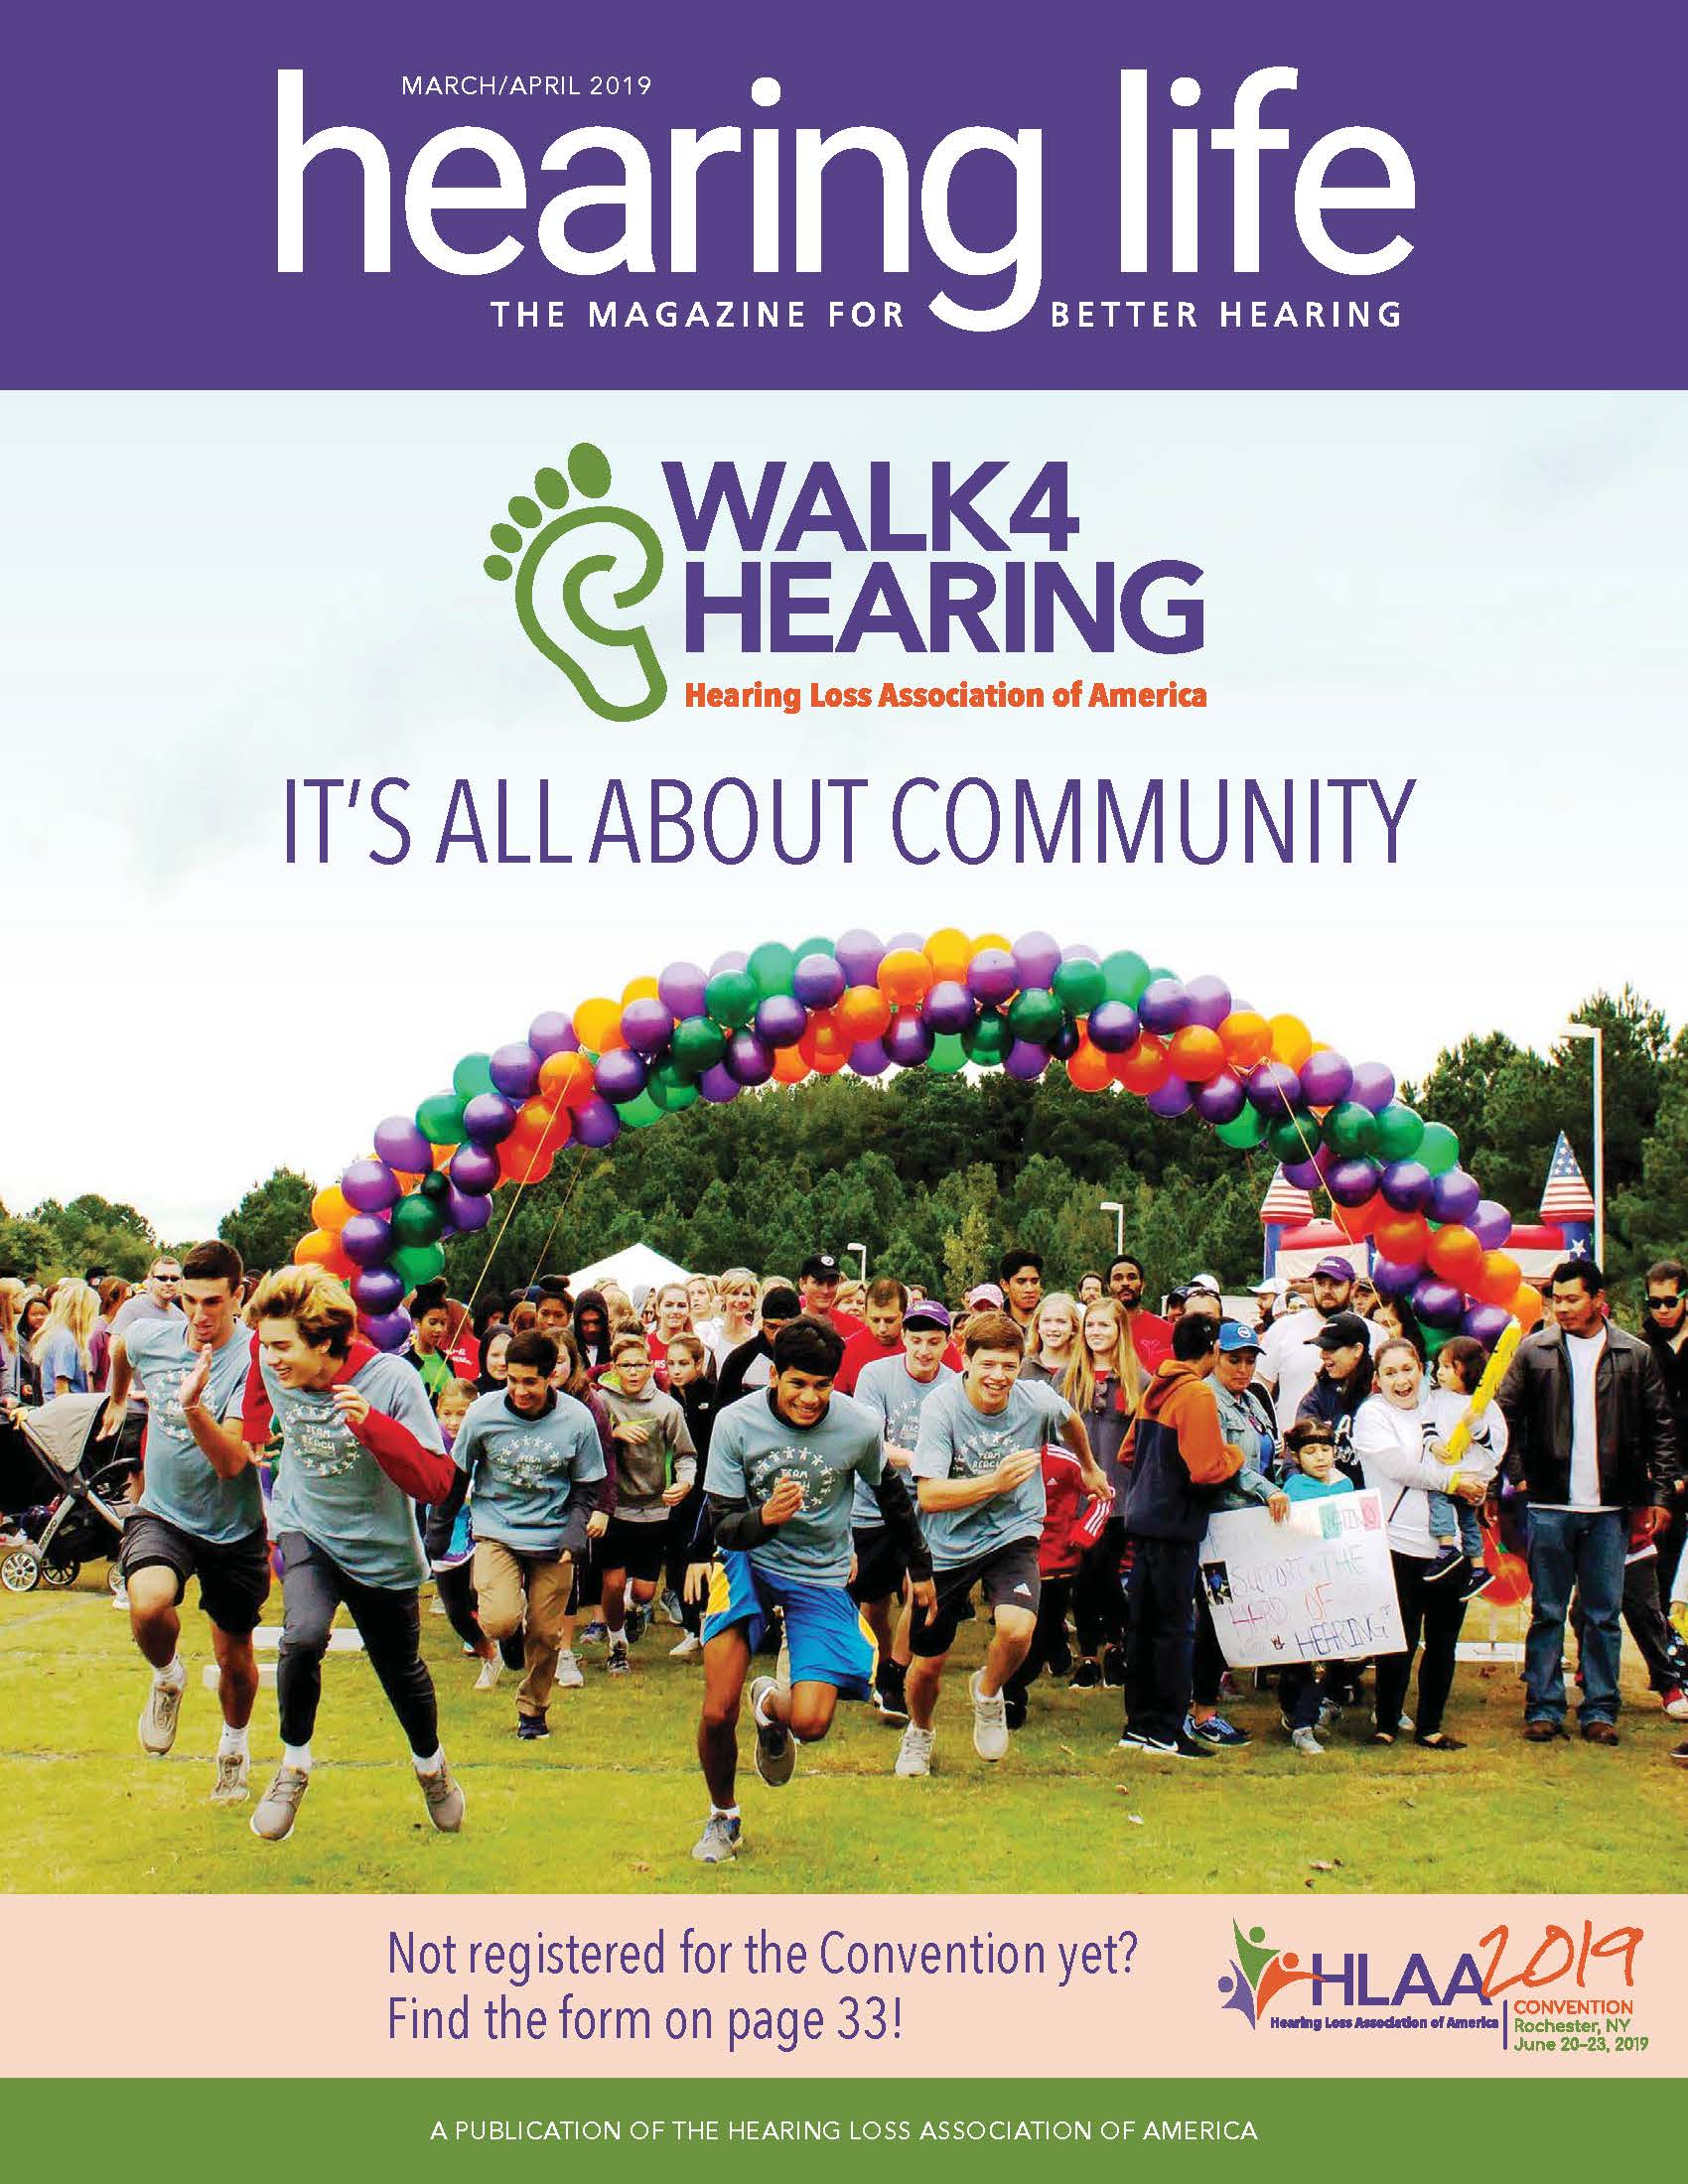 HLAA HearingLife 2019 March/April Cover